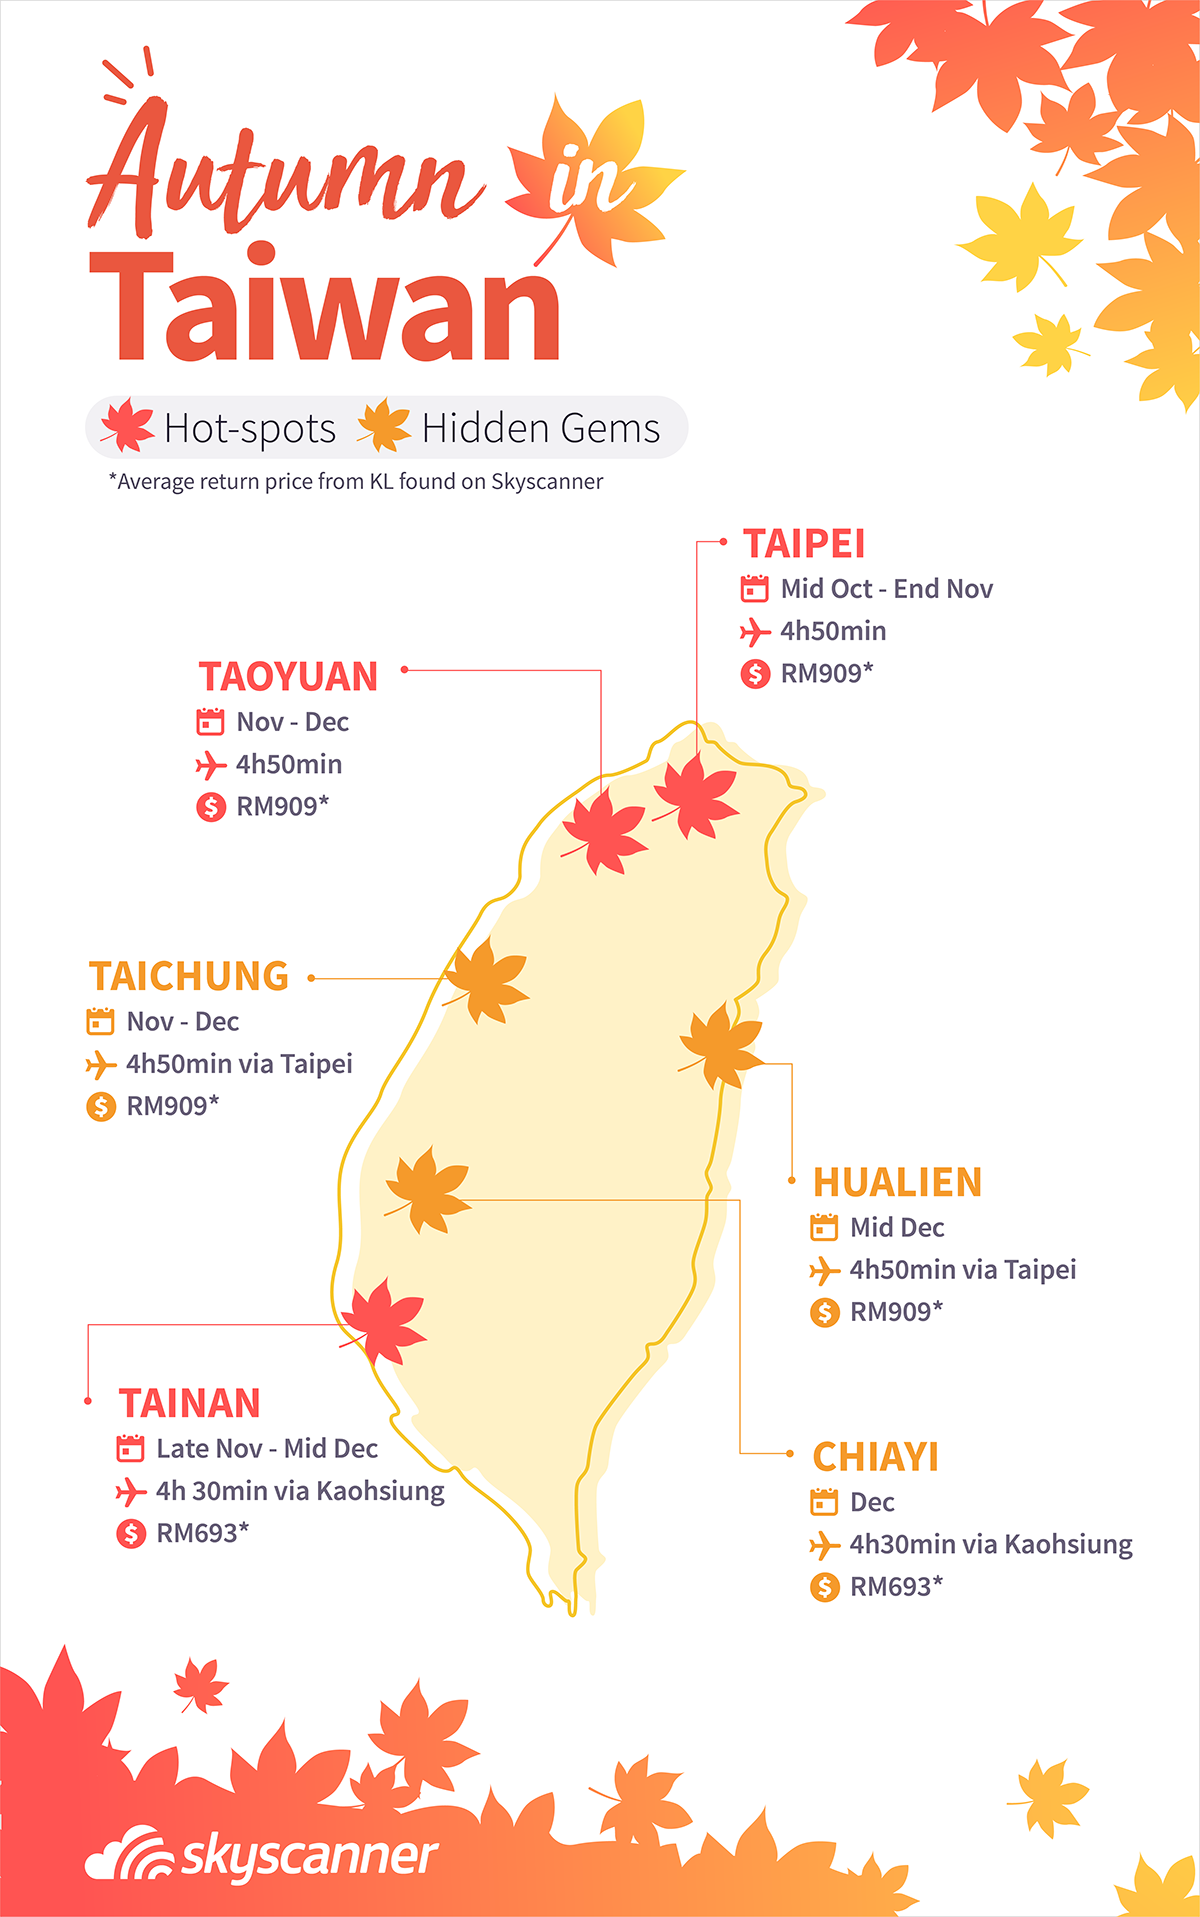 Autumn in Taiwan leaves prediction